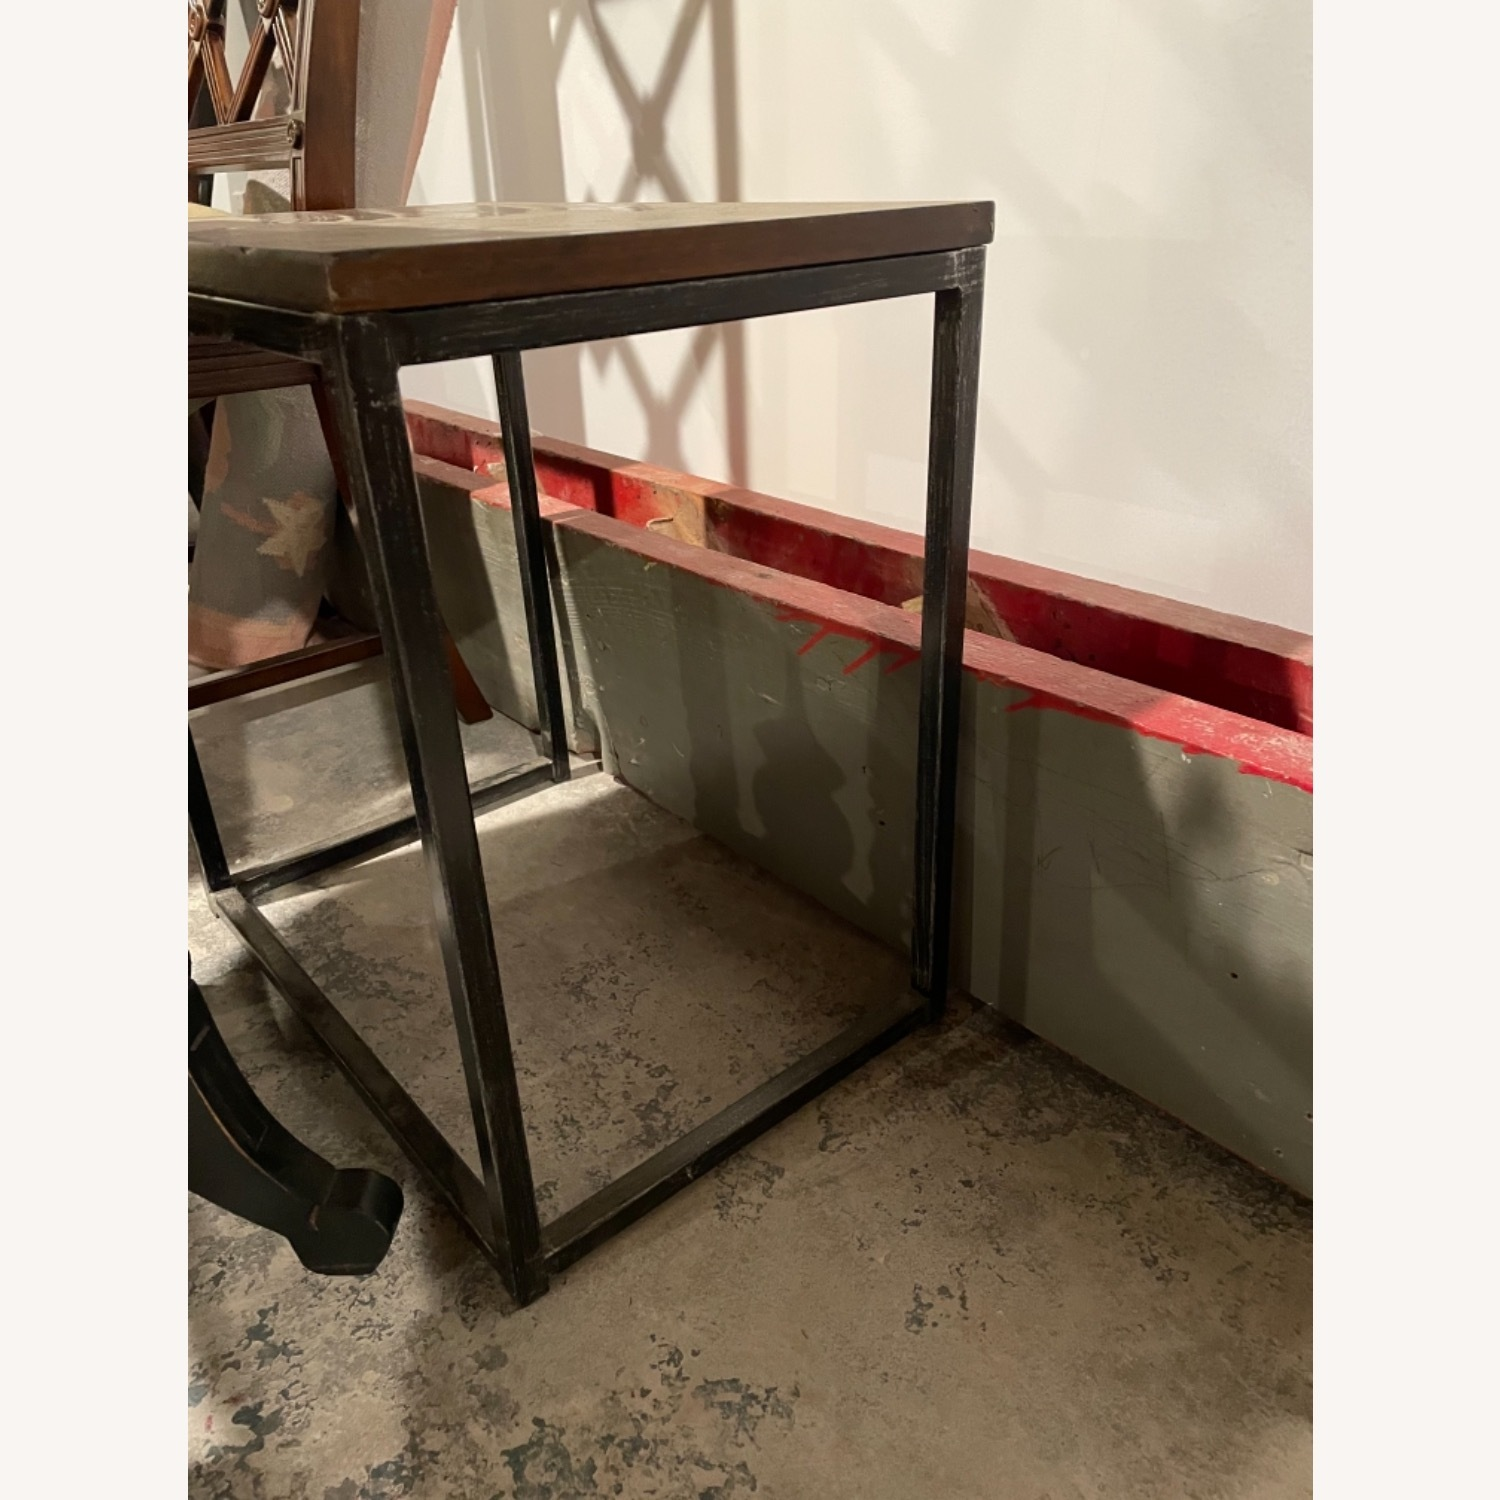 Wood Top Table with Metal Frame - image-3